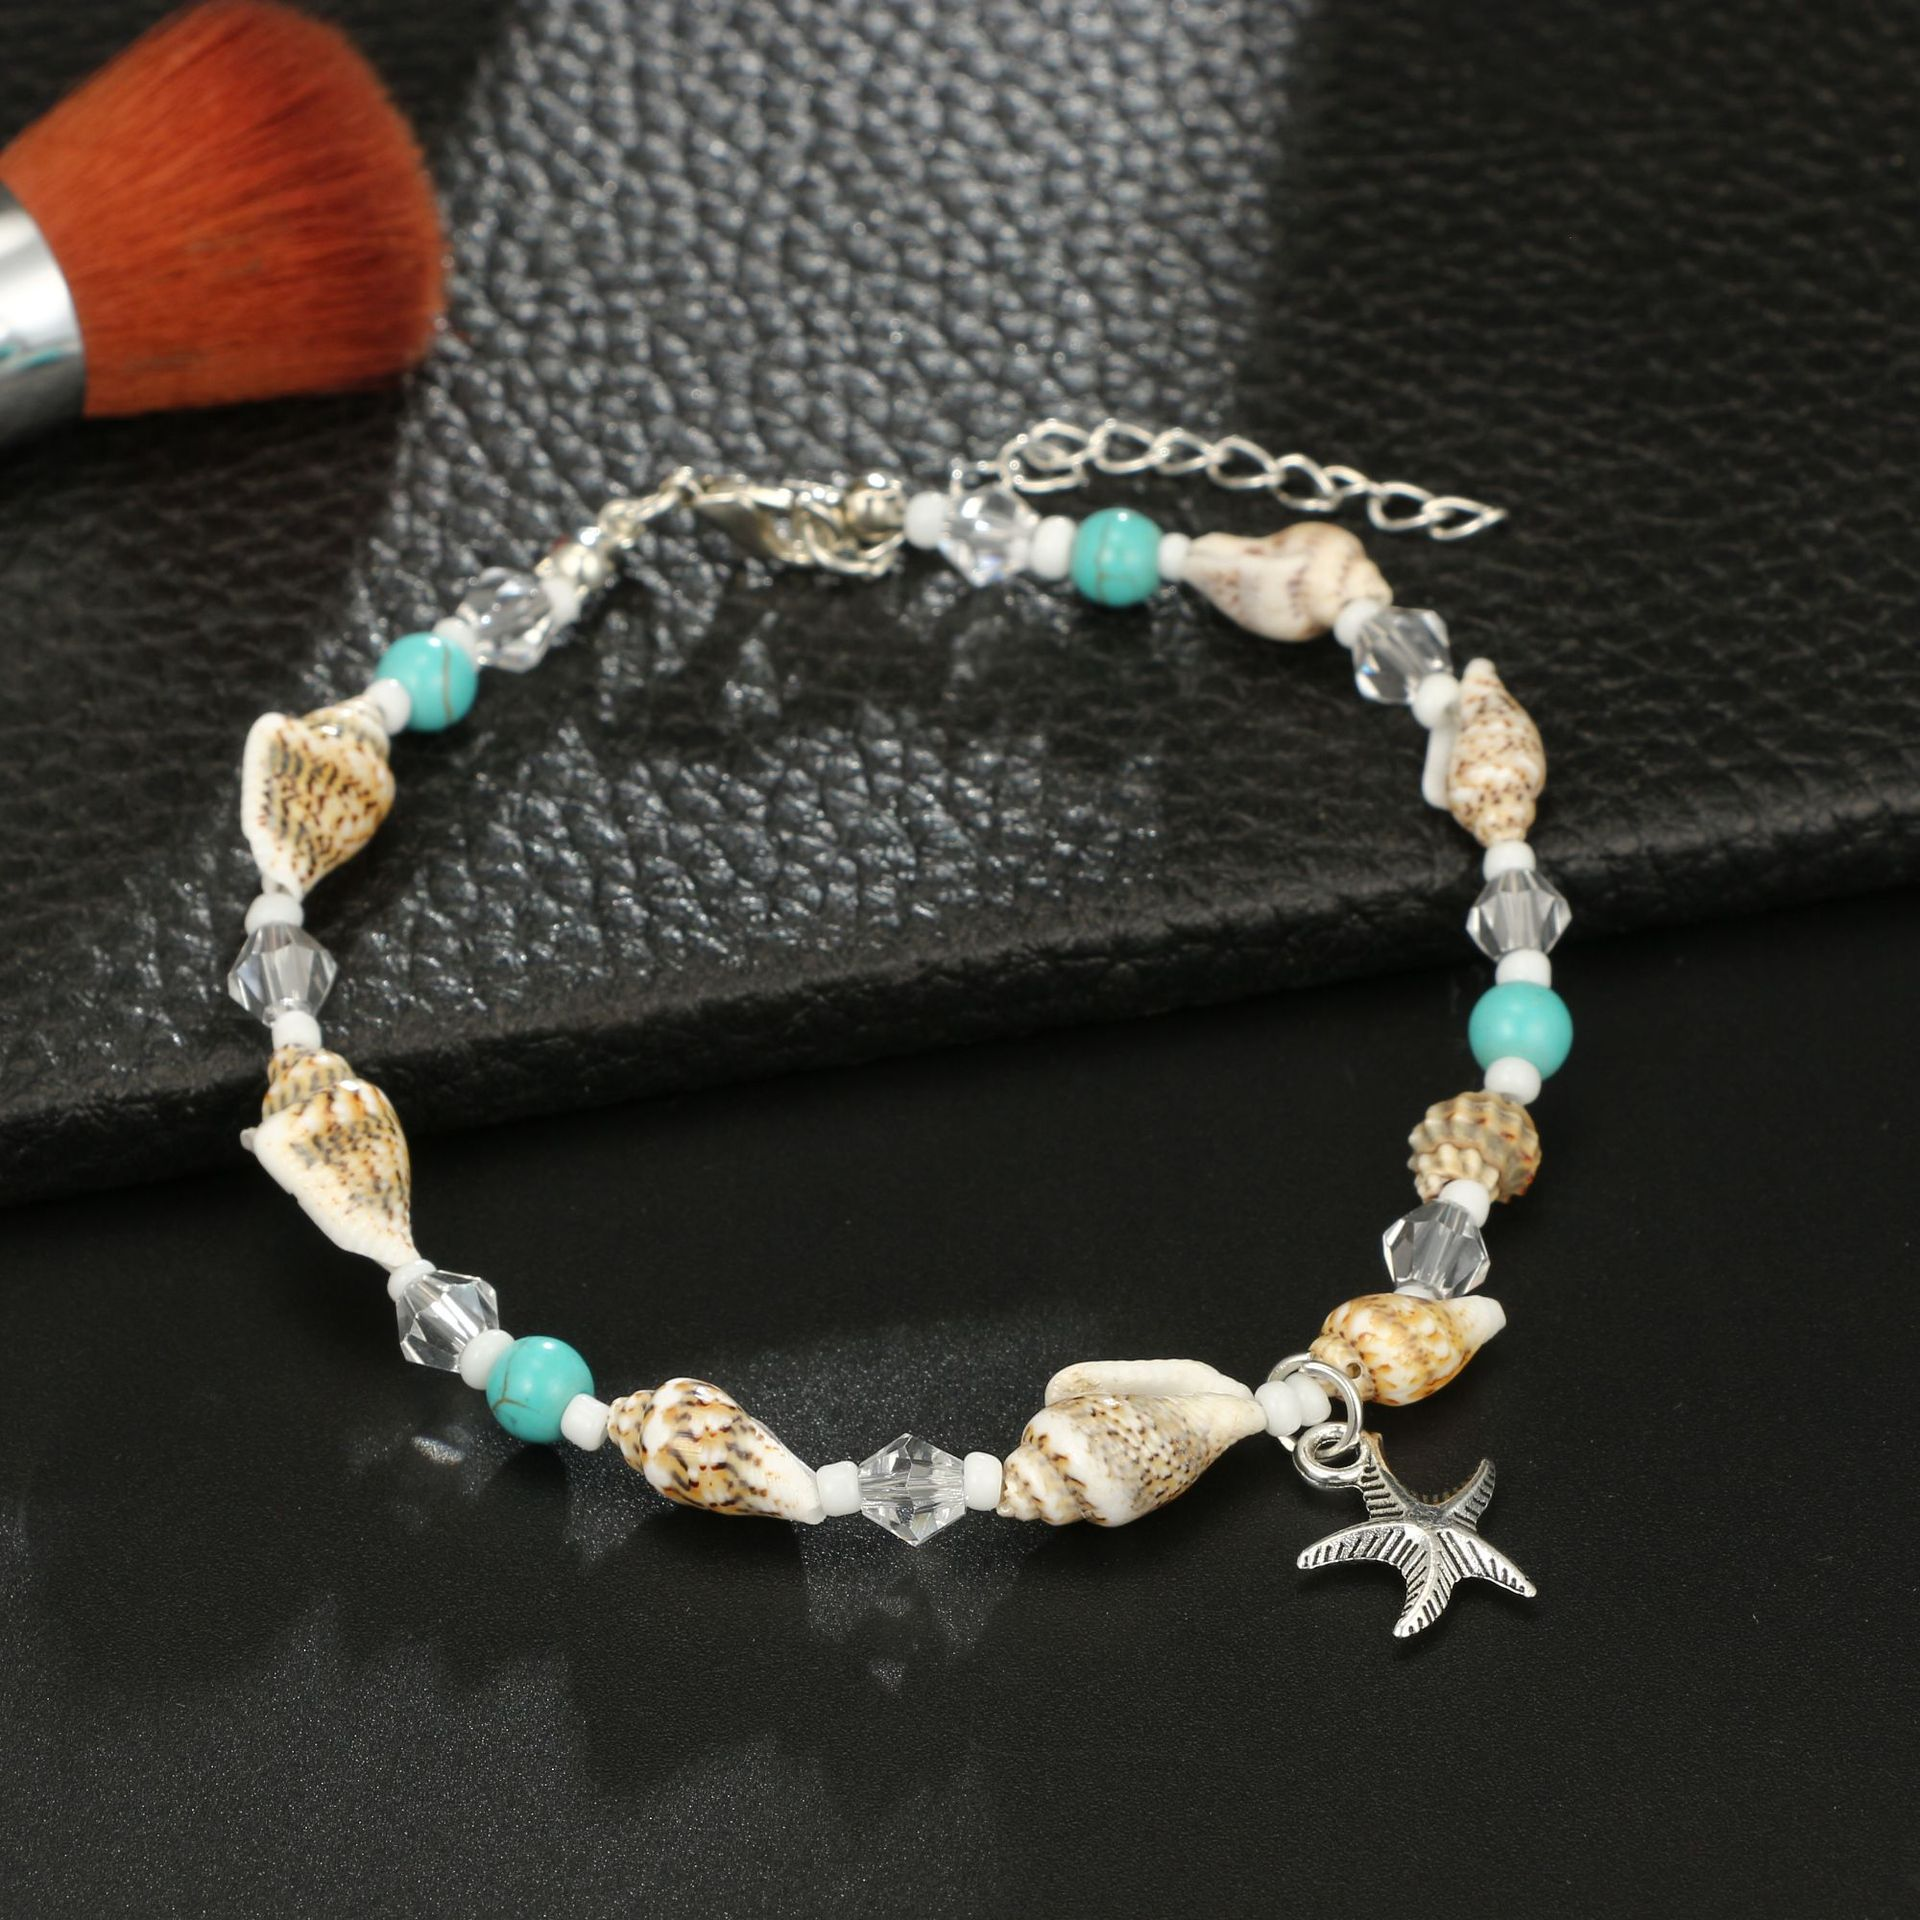 Bohemia Starfish Shell Anklets For Women Beach Anklet Leg Bracelet Handmade Foot Chain Boho Jewelry Gifts Accessories Wholesale 4